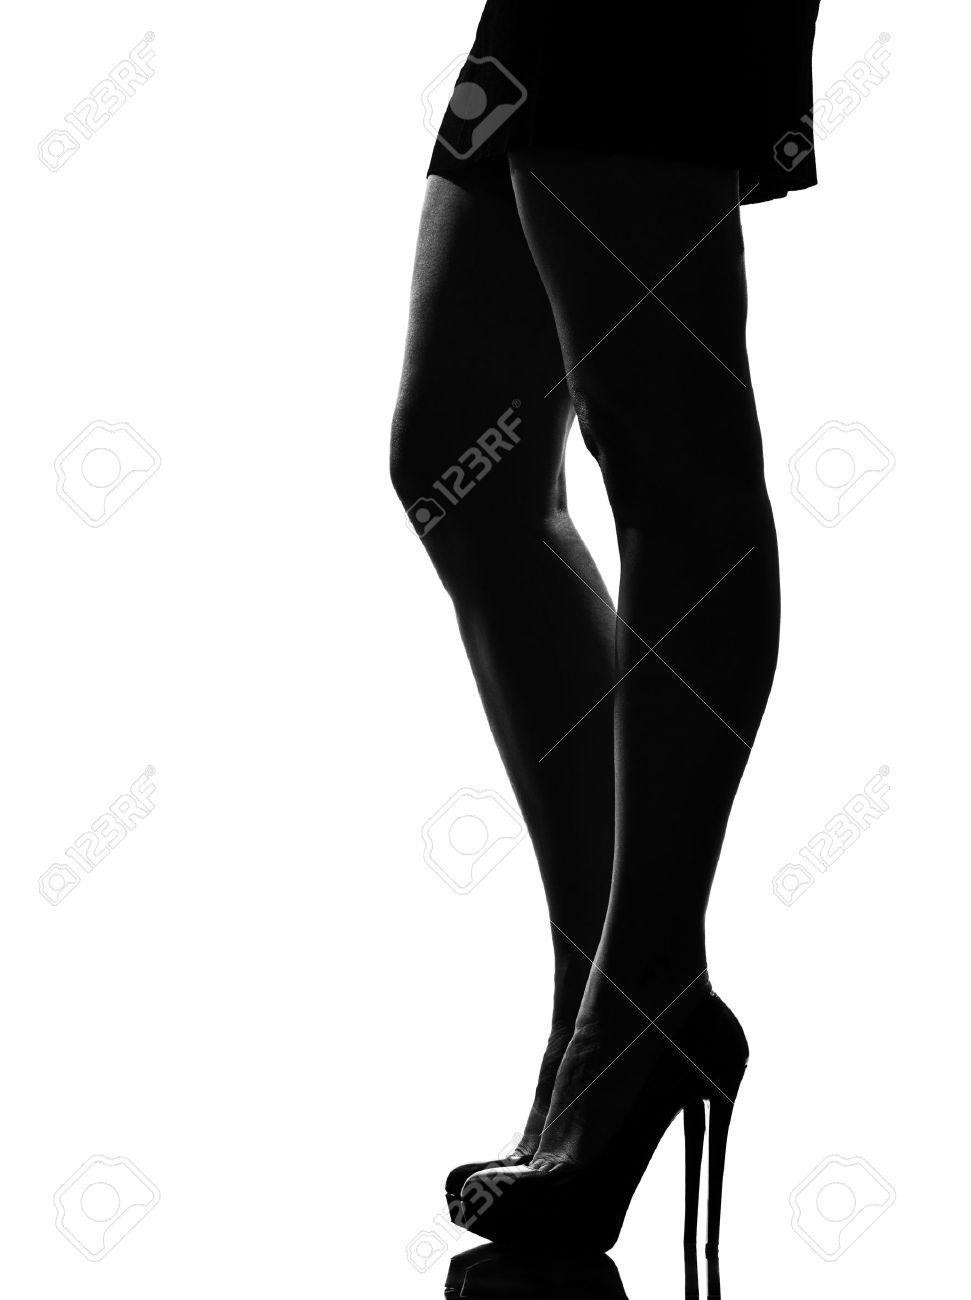 stylish silhouette caucasian beautiful woman legs shoes high heels  stileletto silhouette on studio isolated white background Stock Photo - 9799939